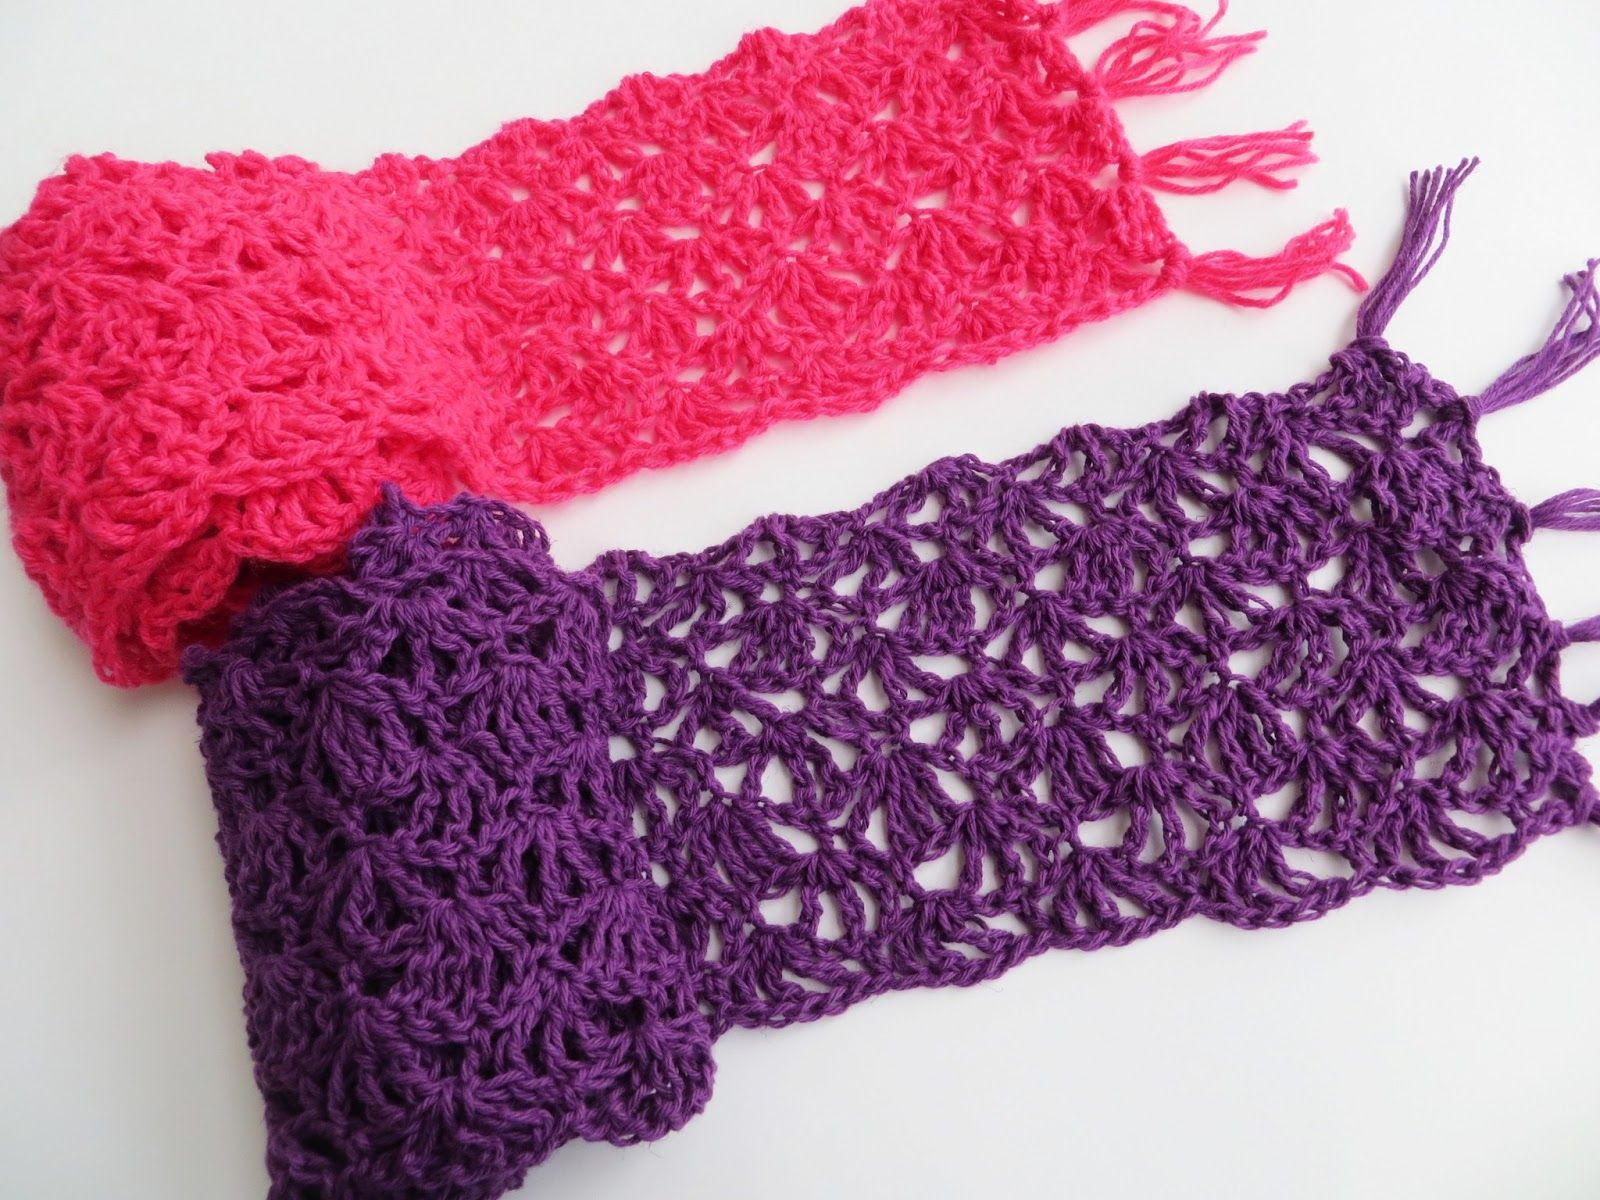 Alana lacy scarf free crochet pattern crochet scarf patterns crochet ideas alana lacy scarf free crochet pattern bankloansurffo Image collections